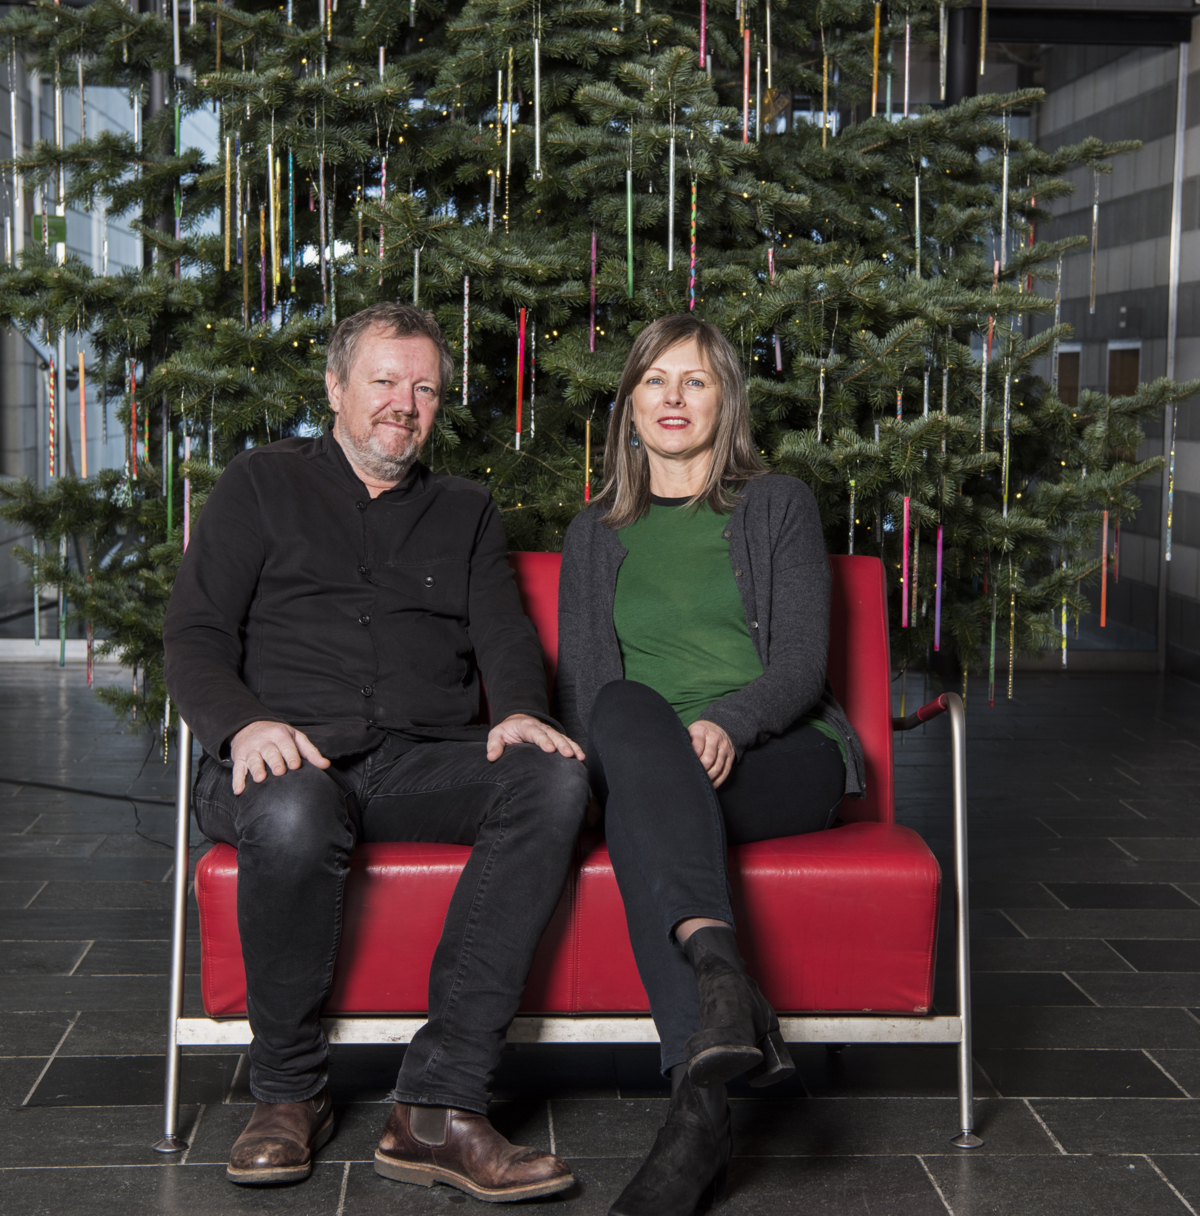 Kjetil Trædahl Thorsen and Jorunn Sannes from Snøhetta sitting in a red chair in front of the Christmas tree.